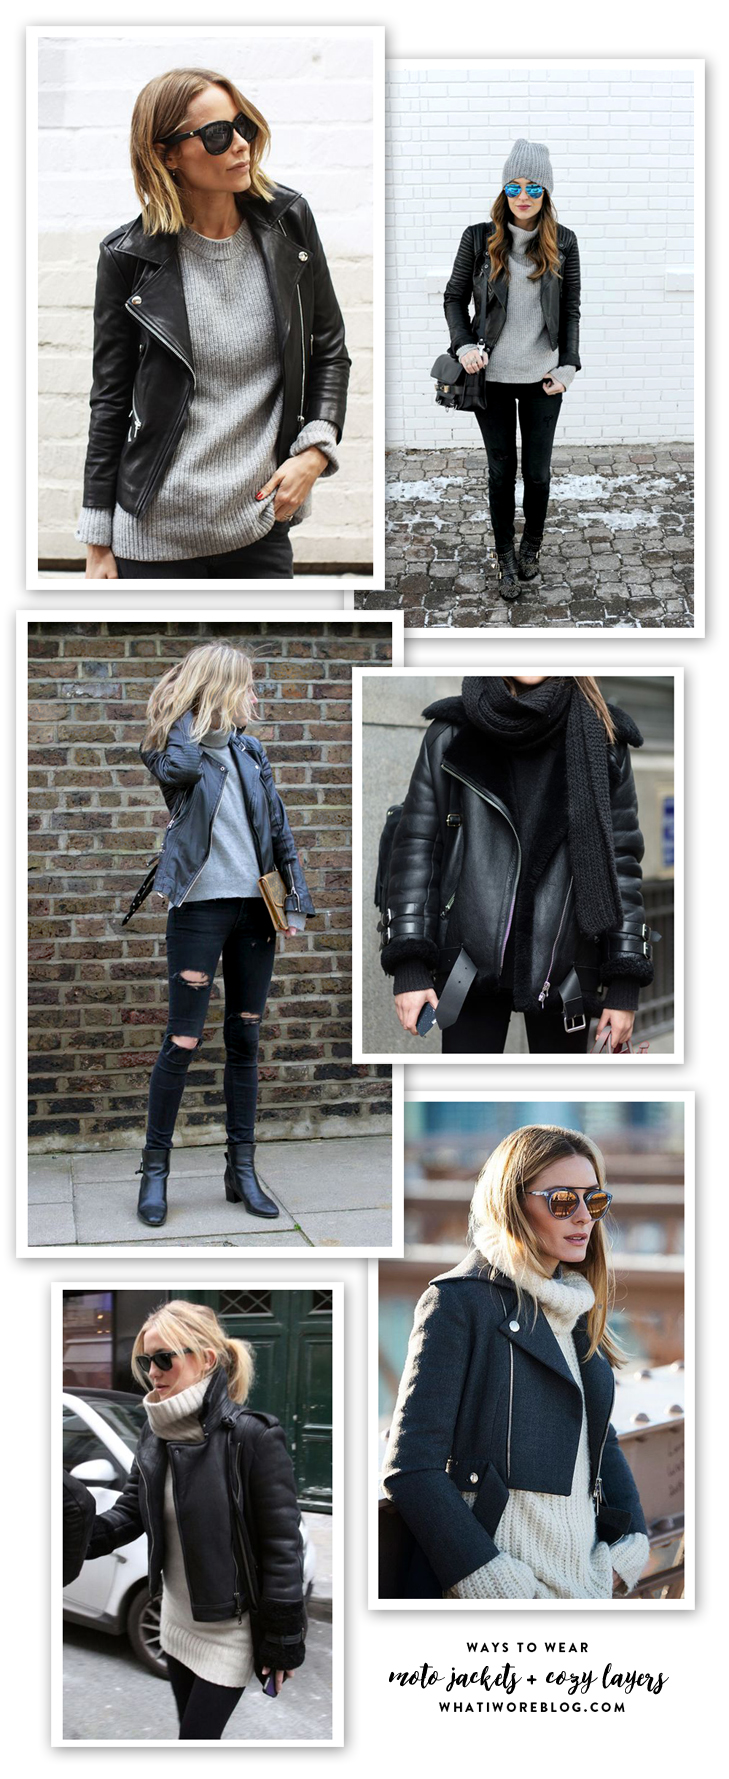 Leather Jacket Outfit, Moto Jacket Outfit, Moto Jacket and Sweater, Moto Jacket and Layers, Fall Outfit